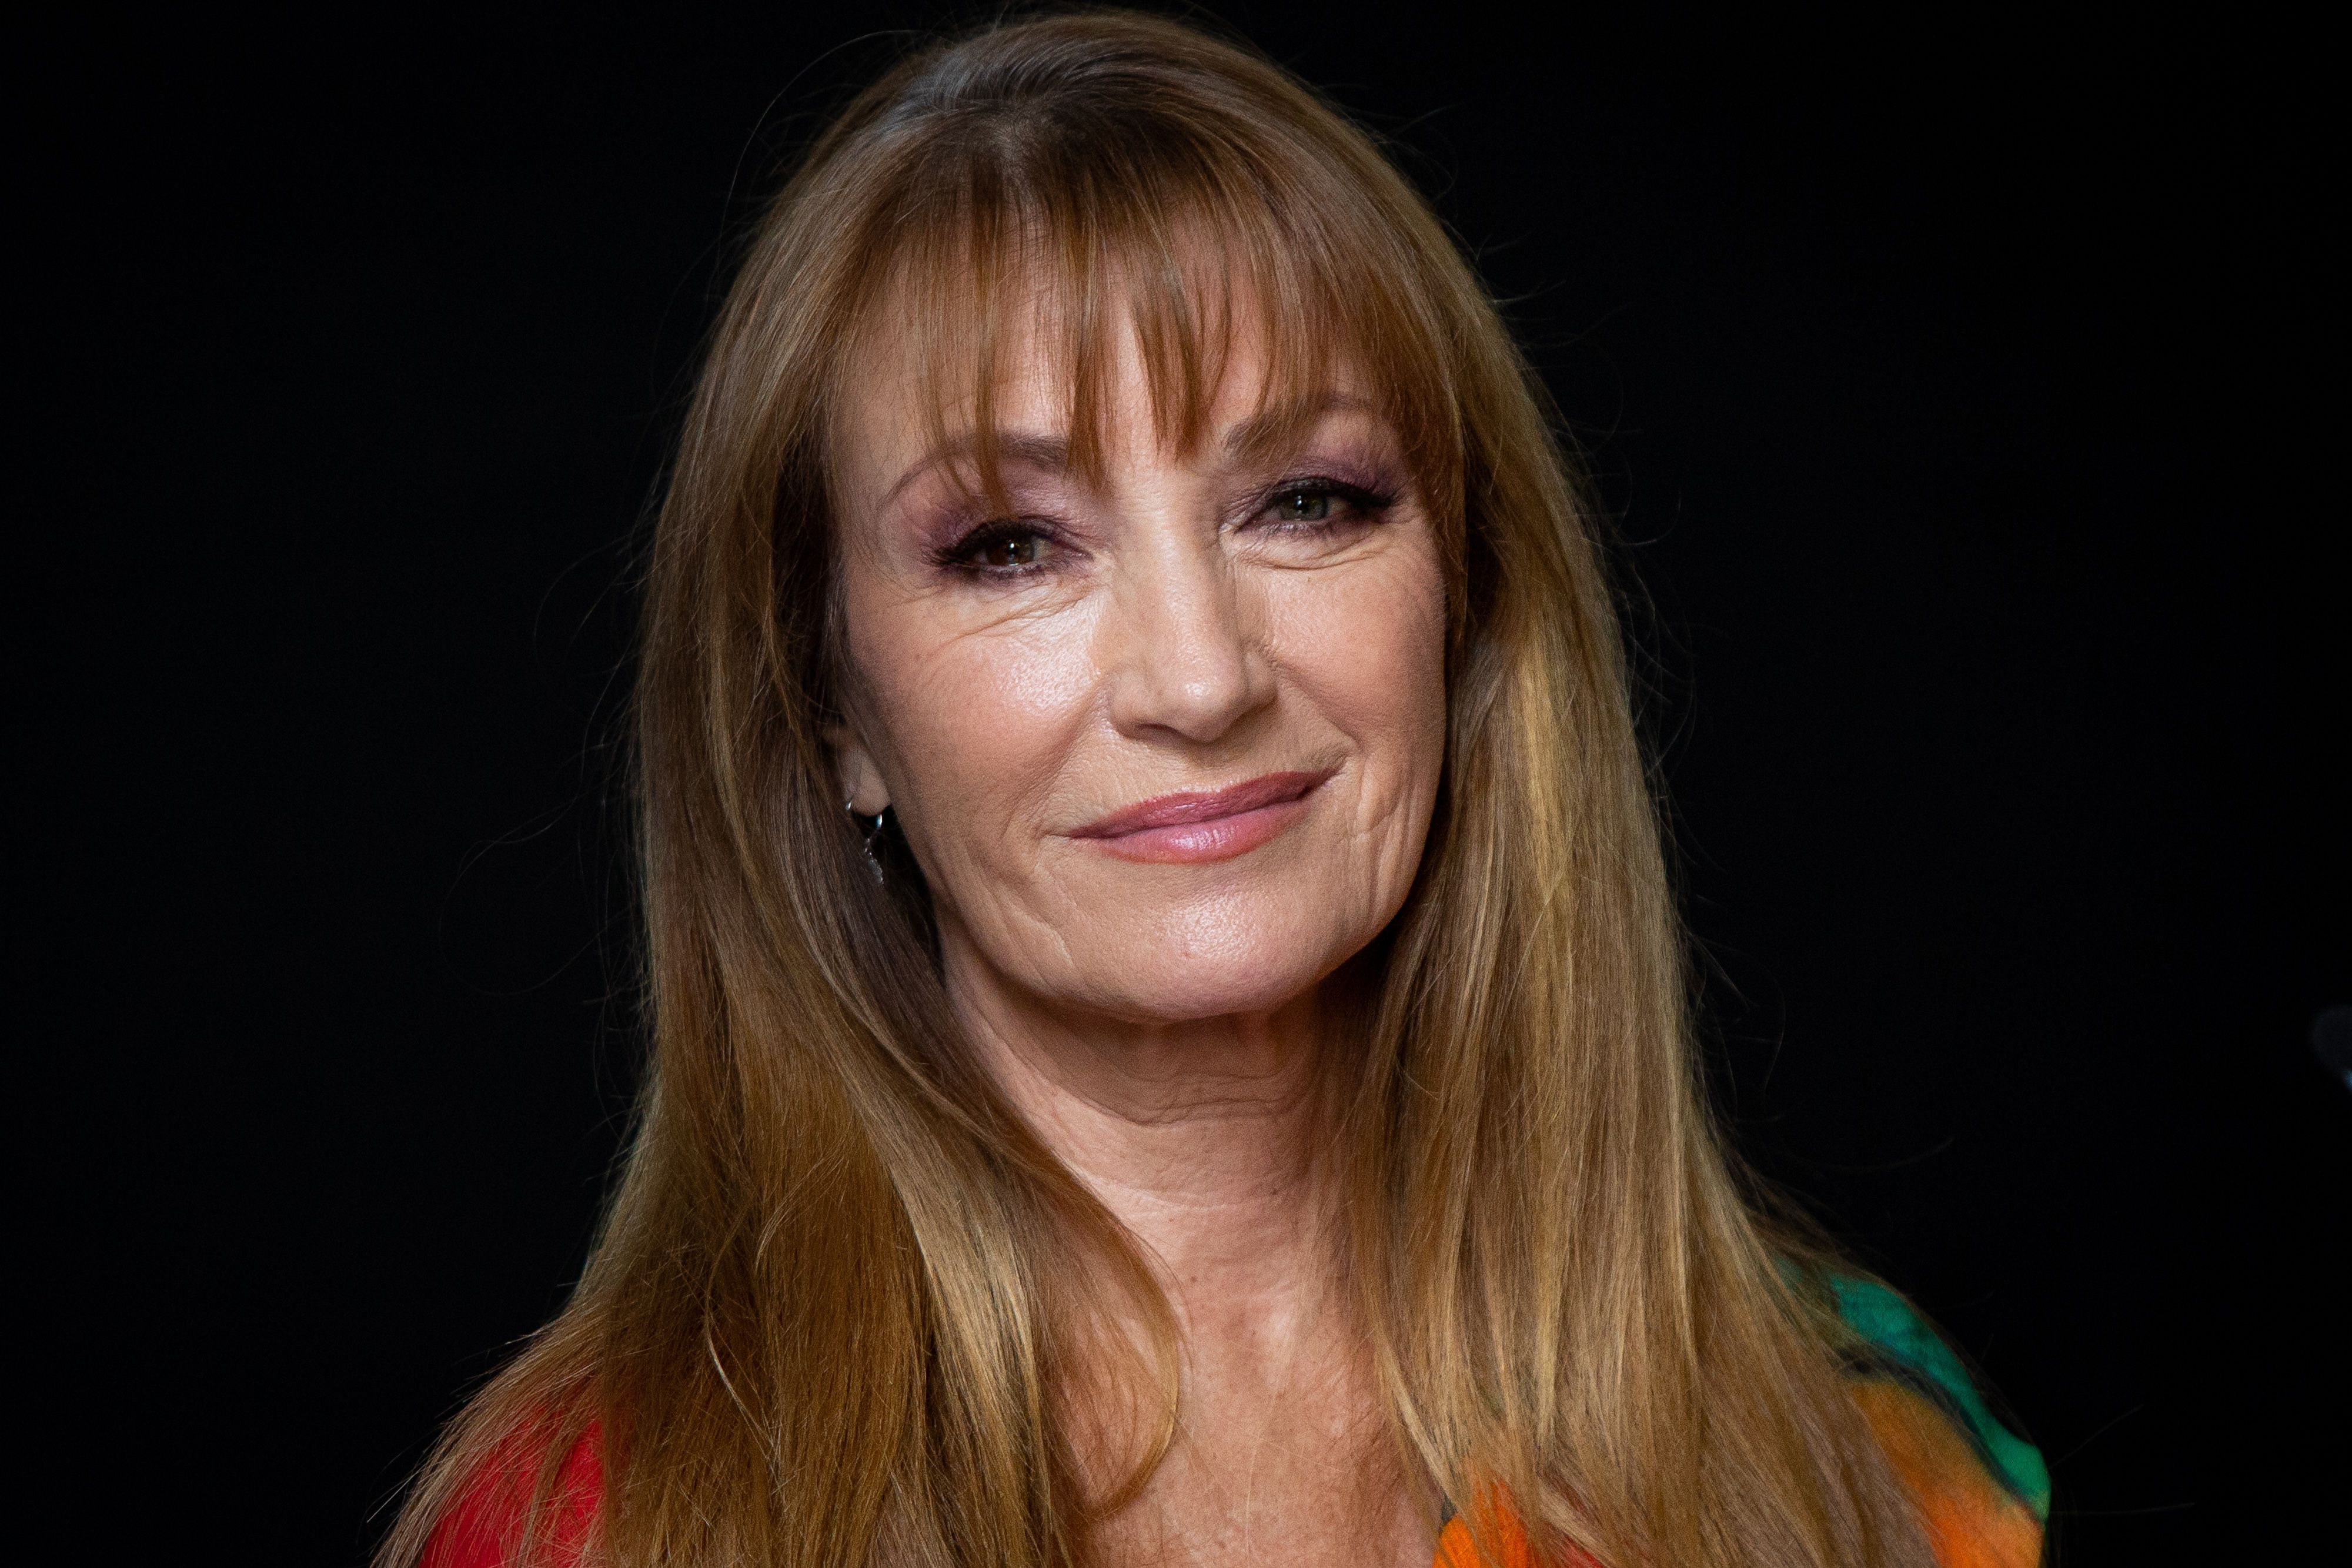 Jane Seymour at 'Glow & Darkness' photocall in Spain on October 26, 2020 | Getty Images